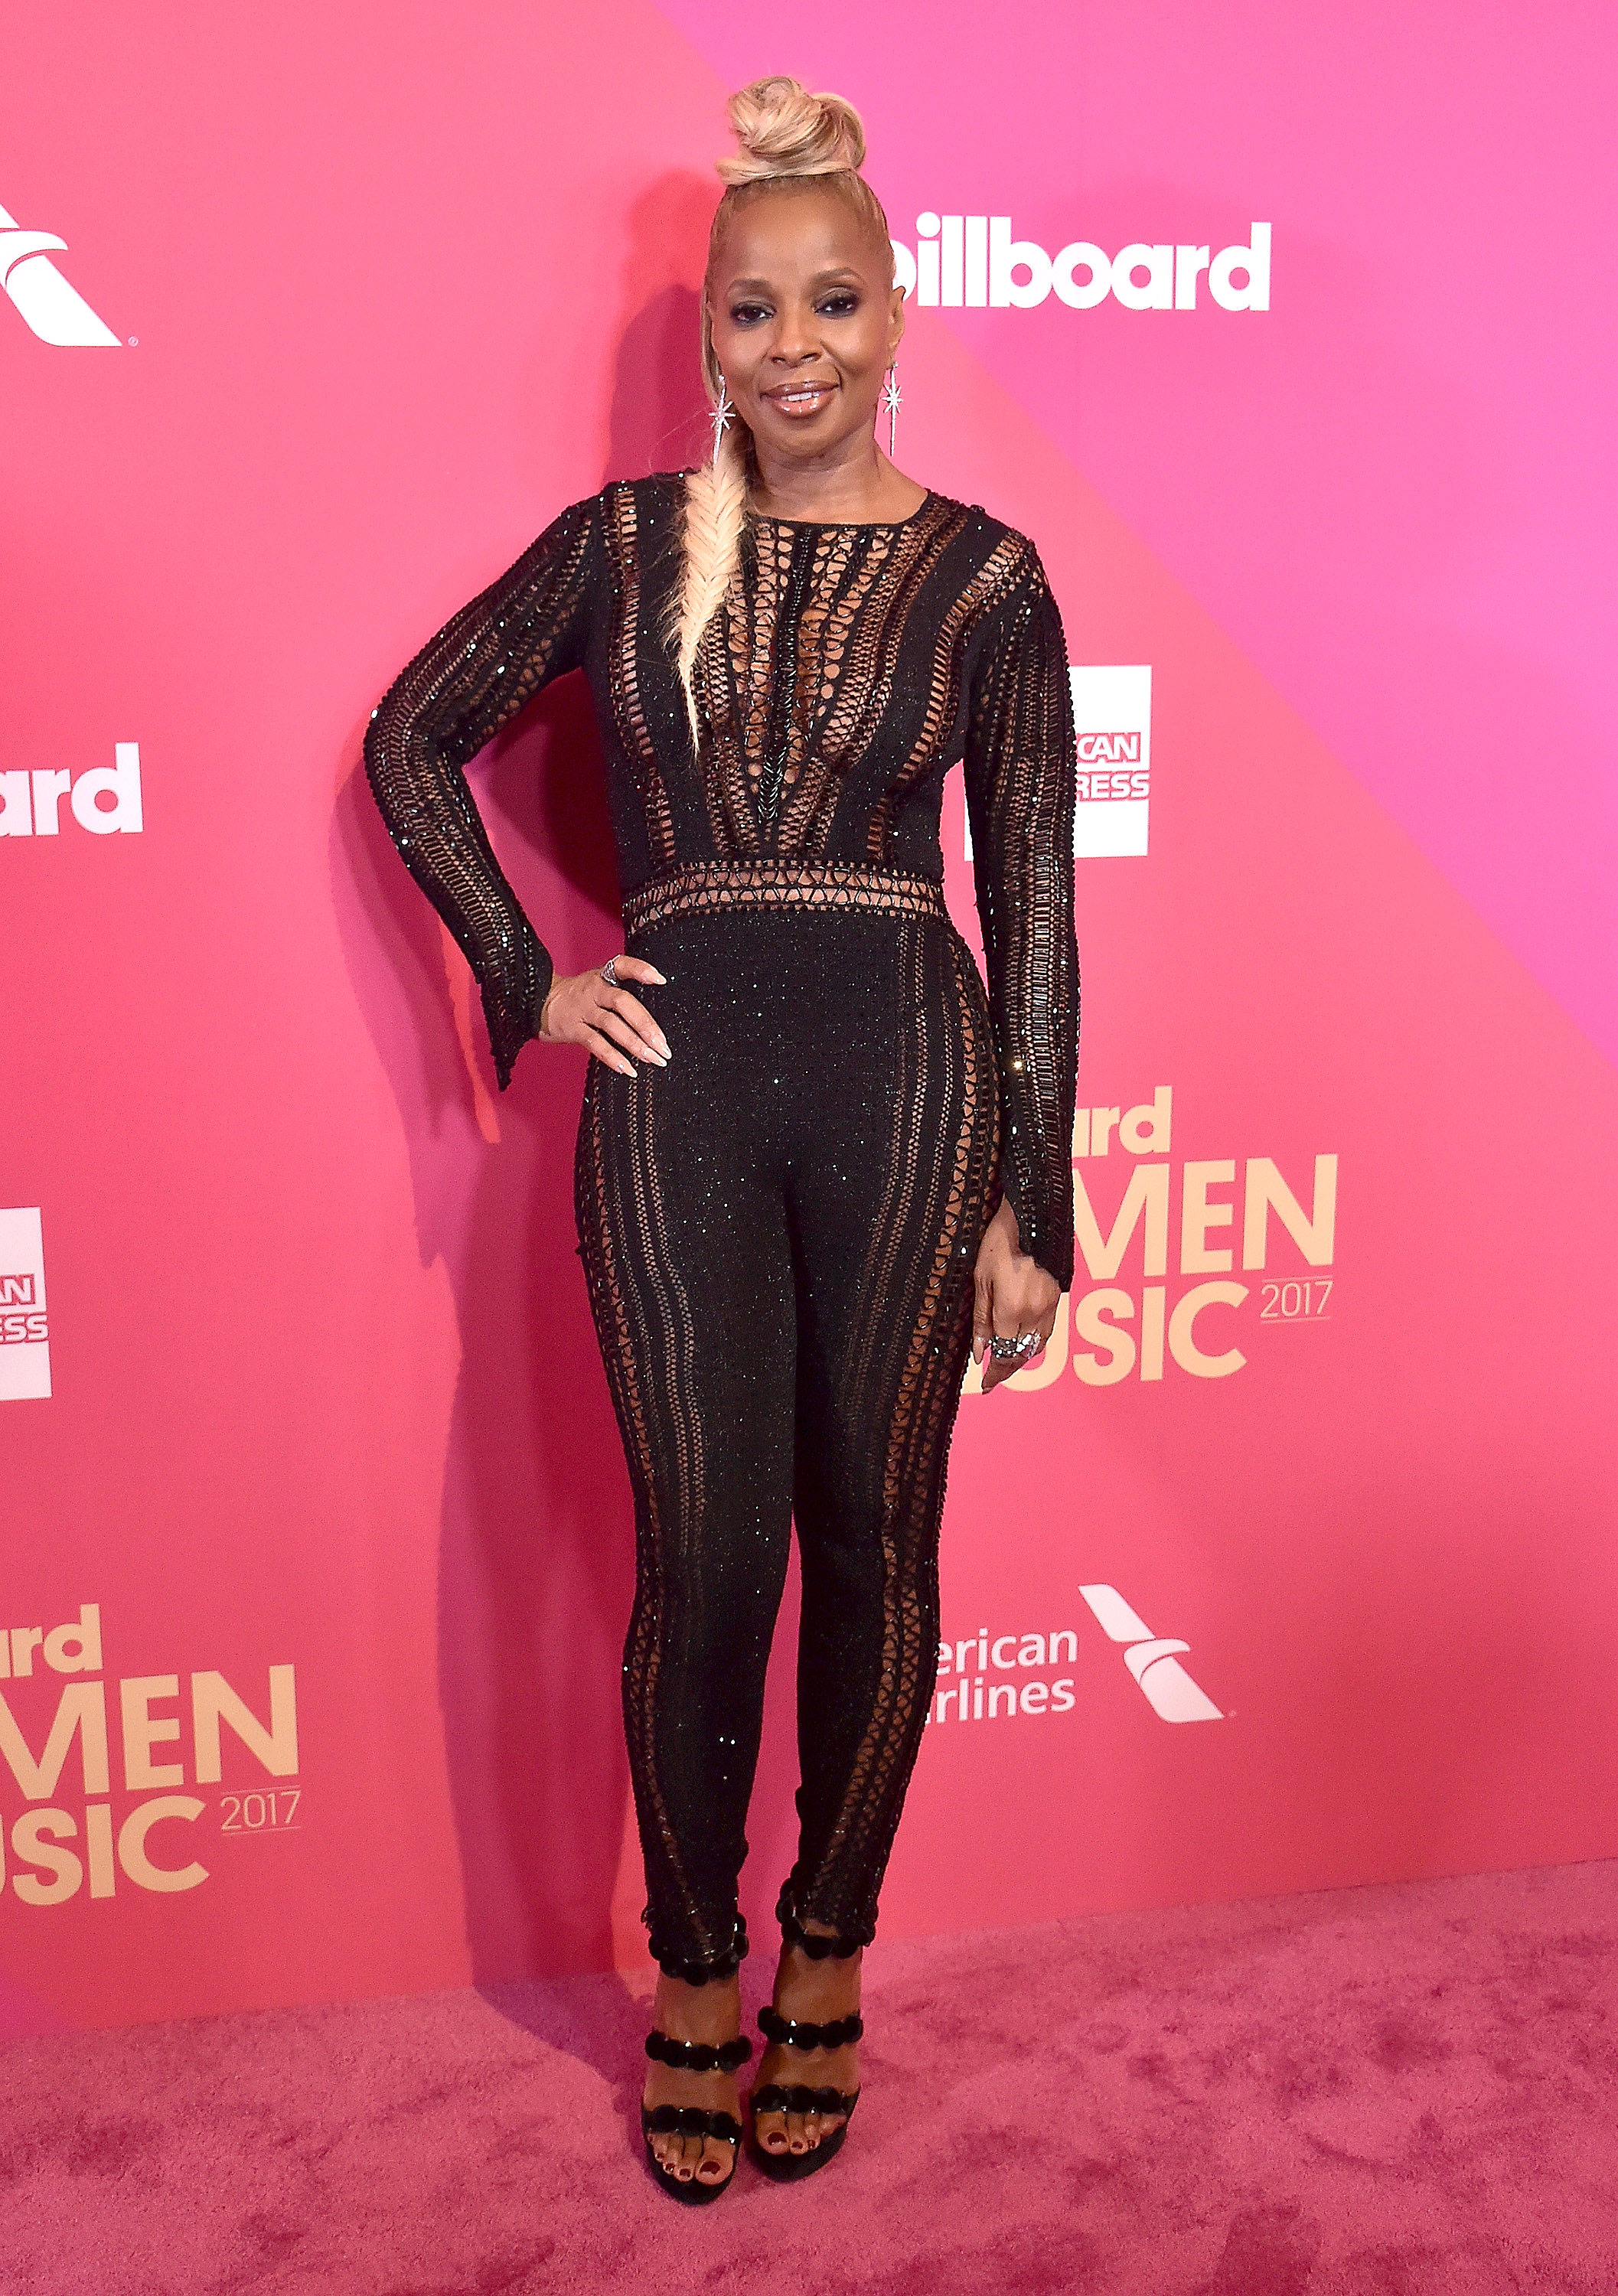 Olivia Culpo, Mary J. Blige and More Stars Wearing Black Jumpsuits